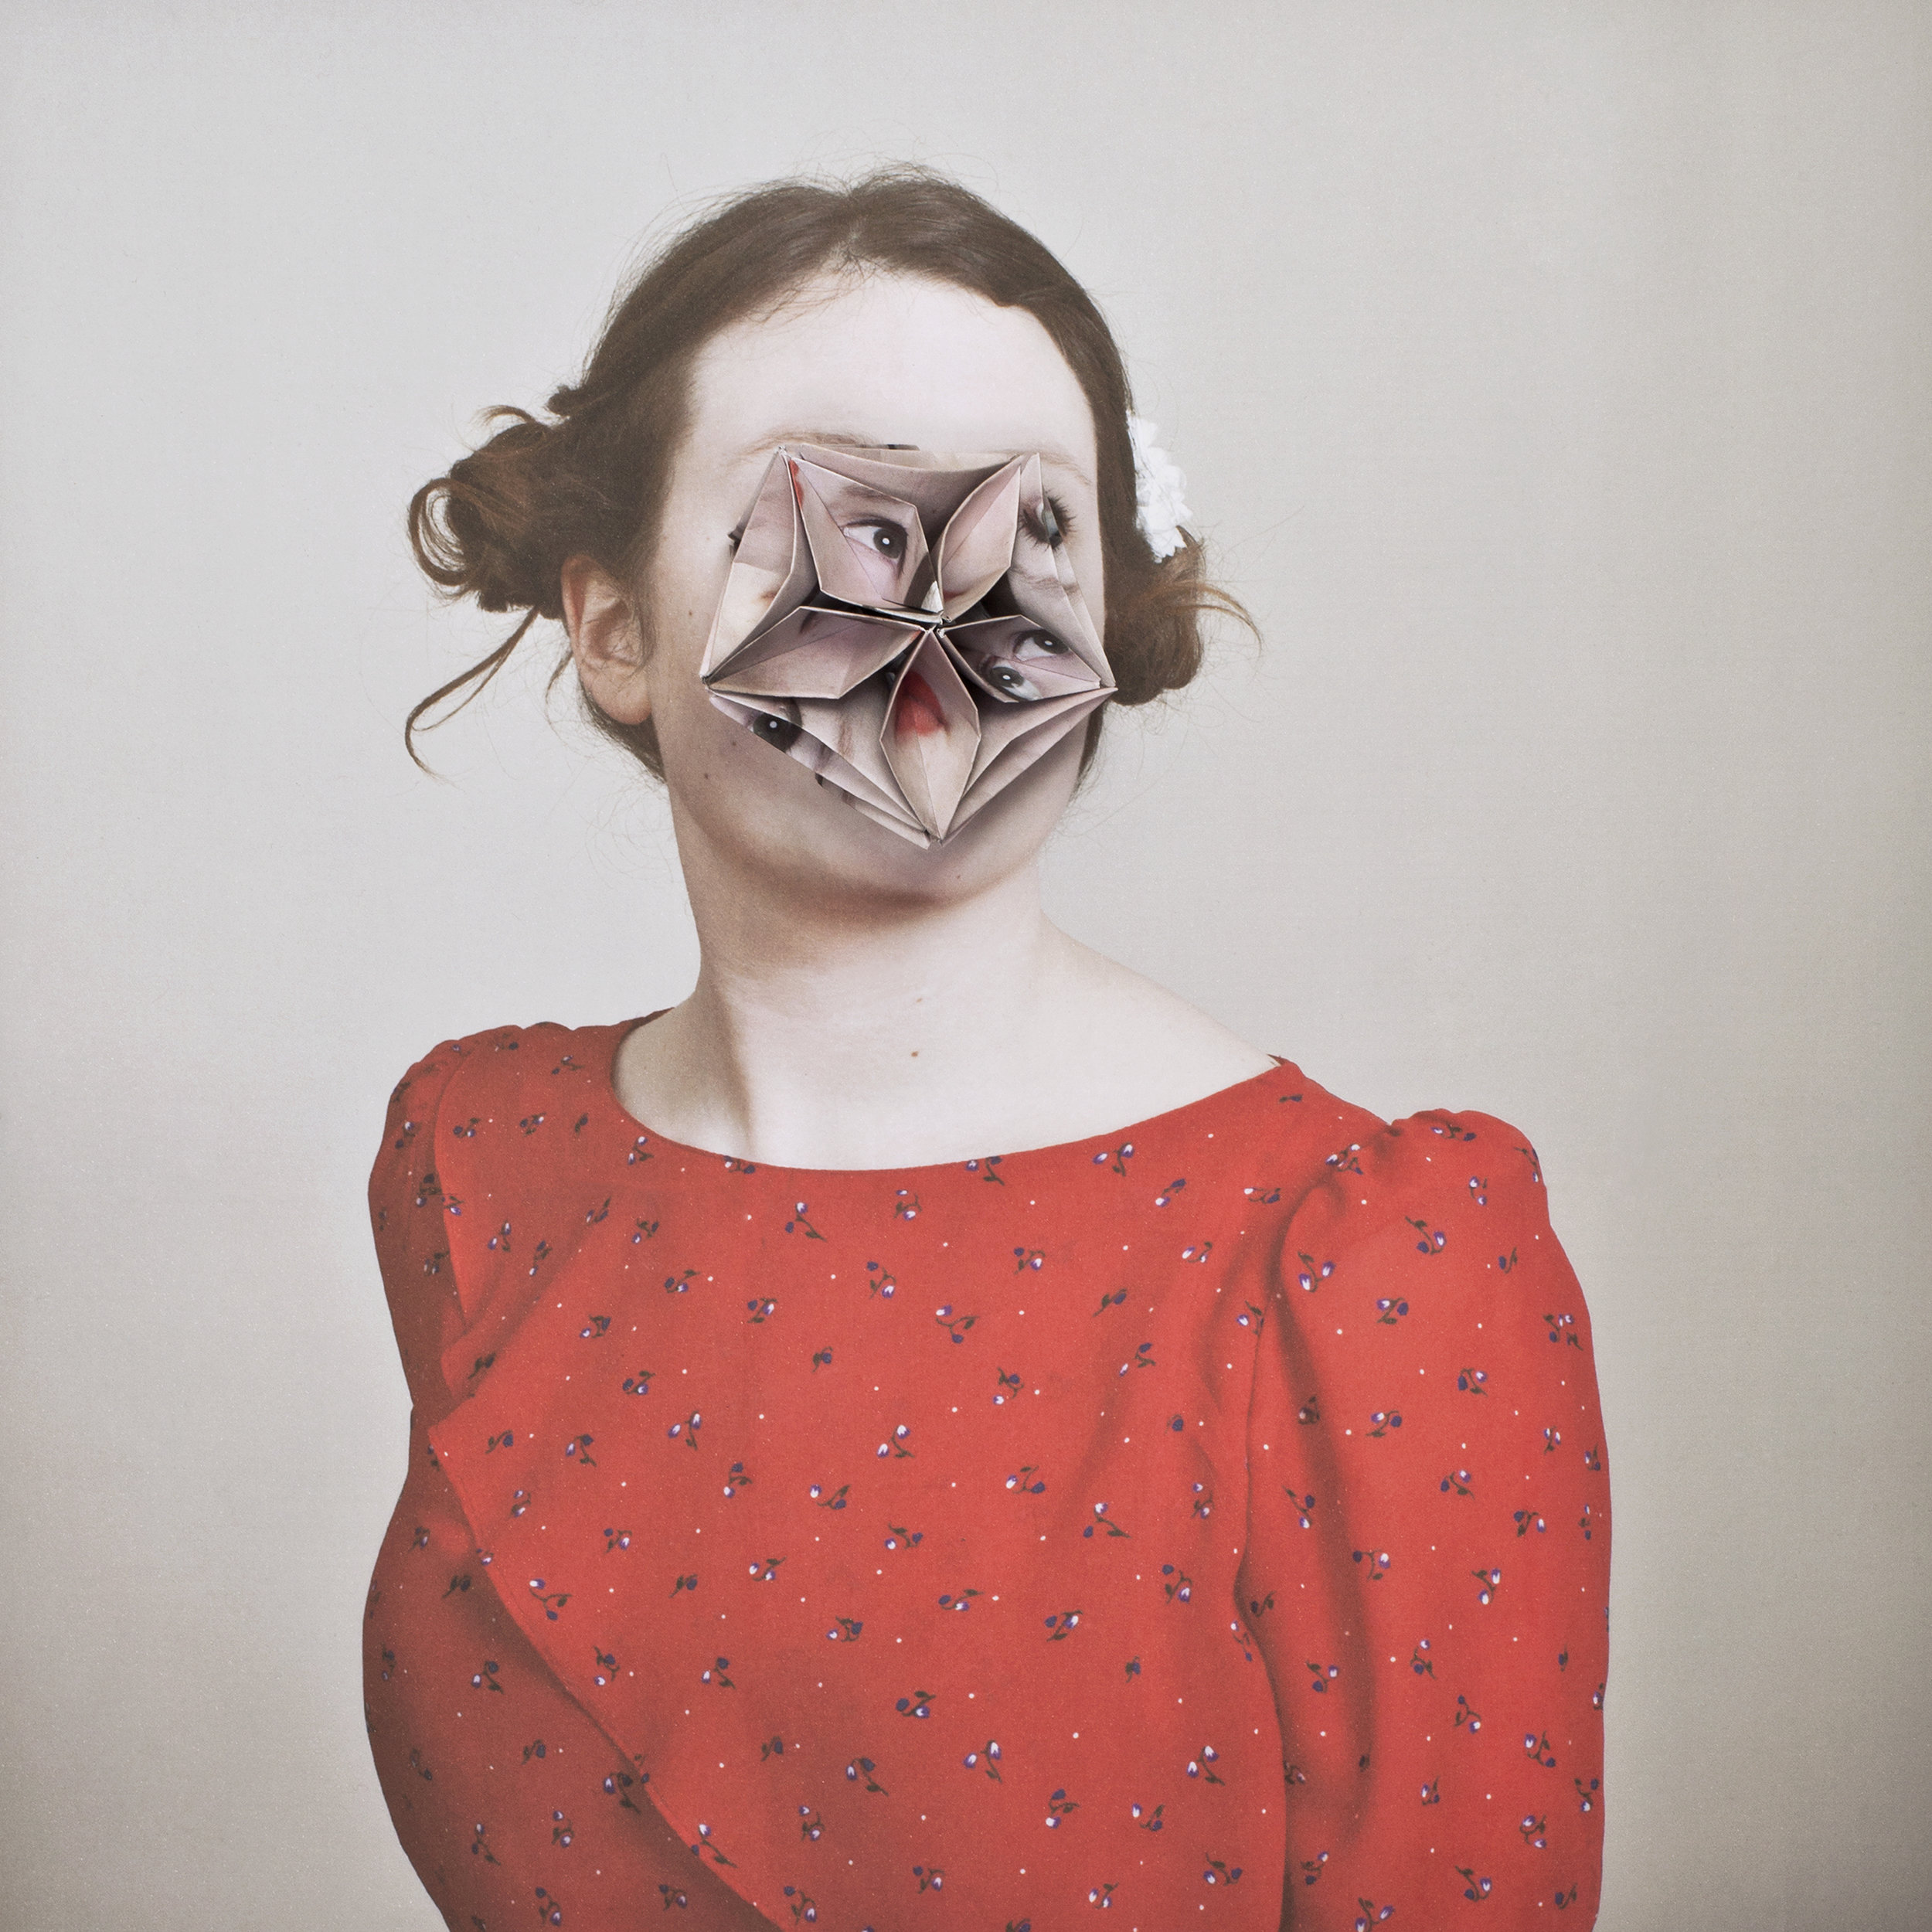 Alma Haser,  Patient No. 4 (Alex) , 2013  Digital pigment print, 60 x 60 cm (approx. 24 x 24 in), edition of 10   Inquire